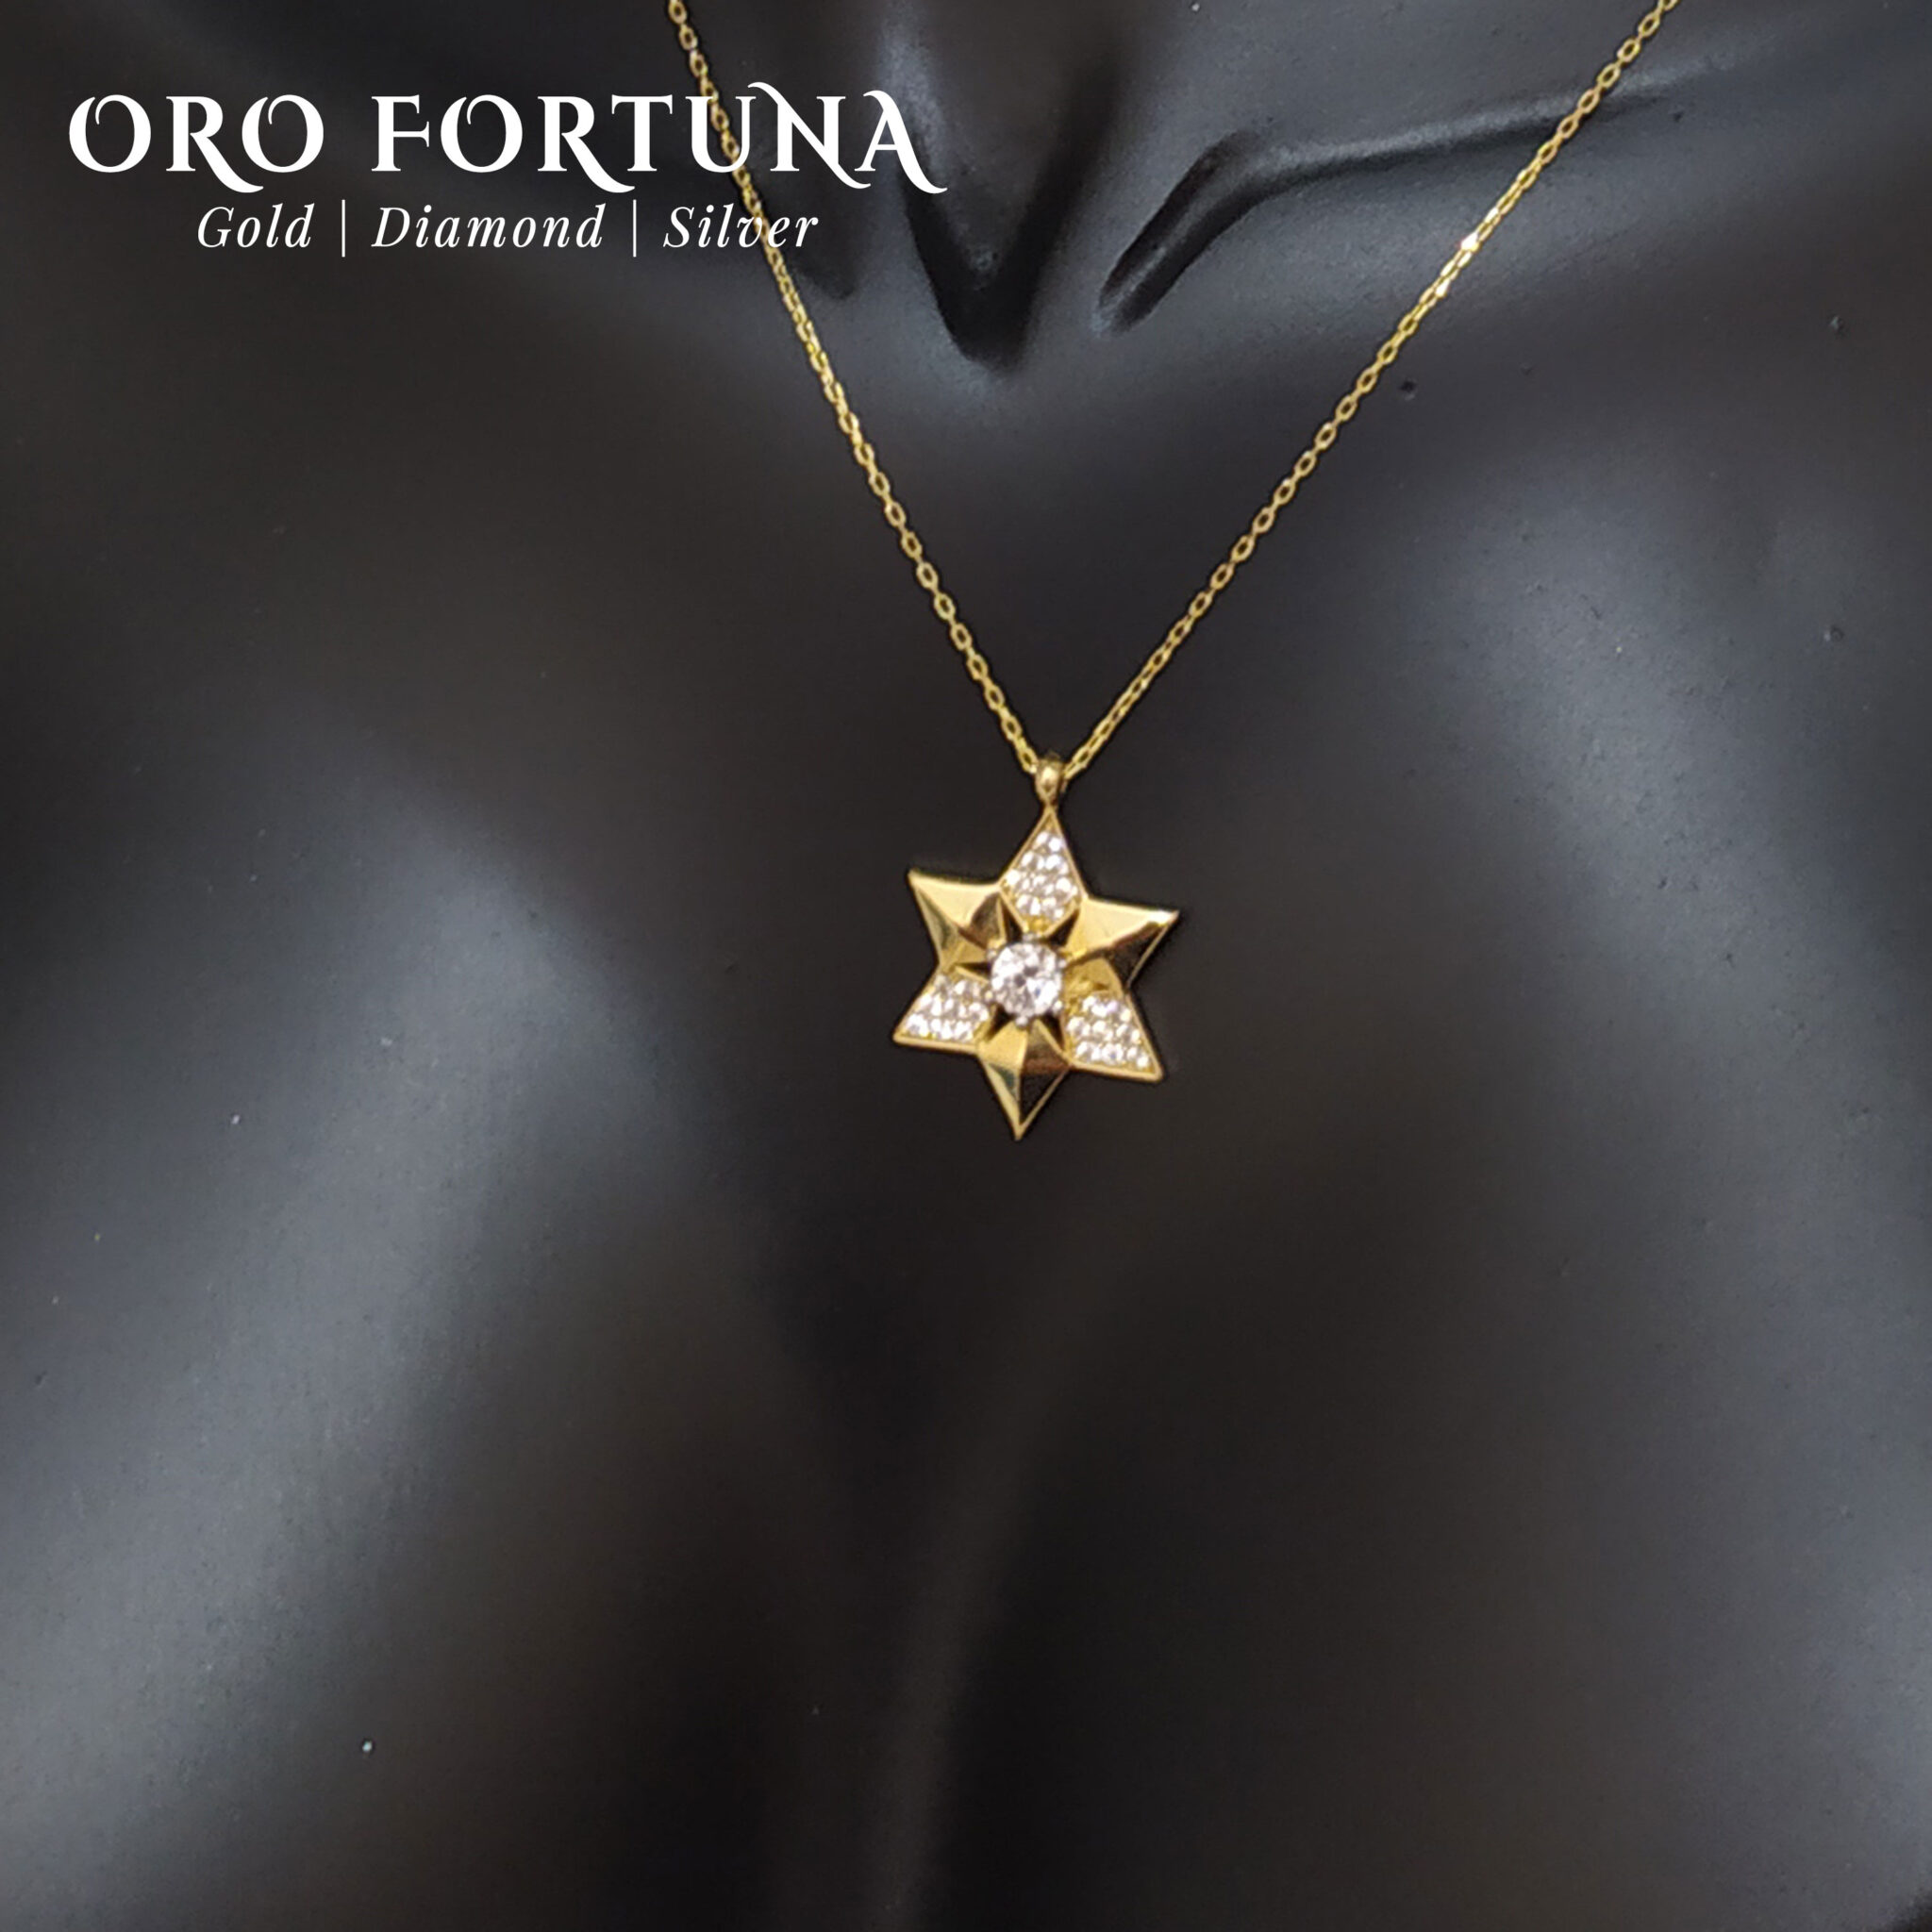 21K Yellow Gold Star of David Necklace Women Gift for Each Fine Fashion Trendy Minimalistic Dainty Fashionable